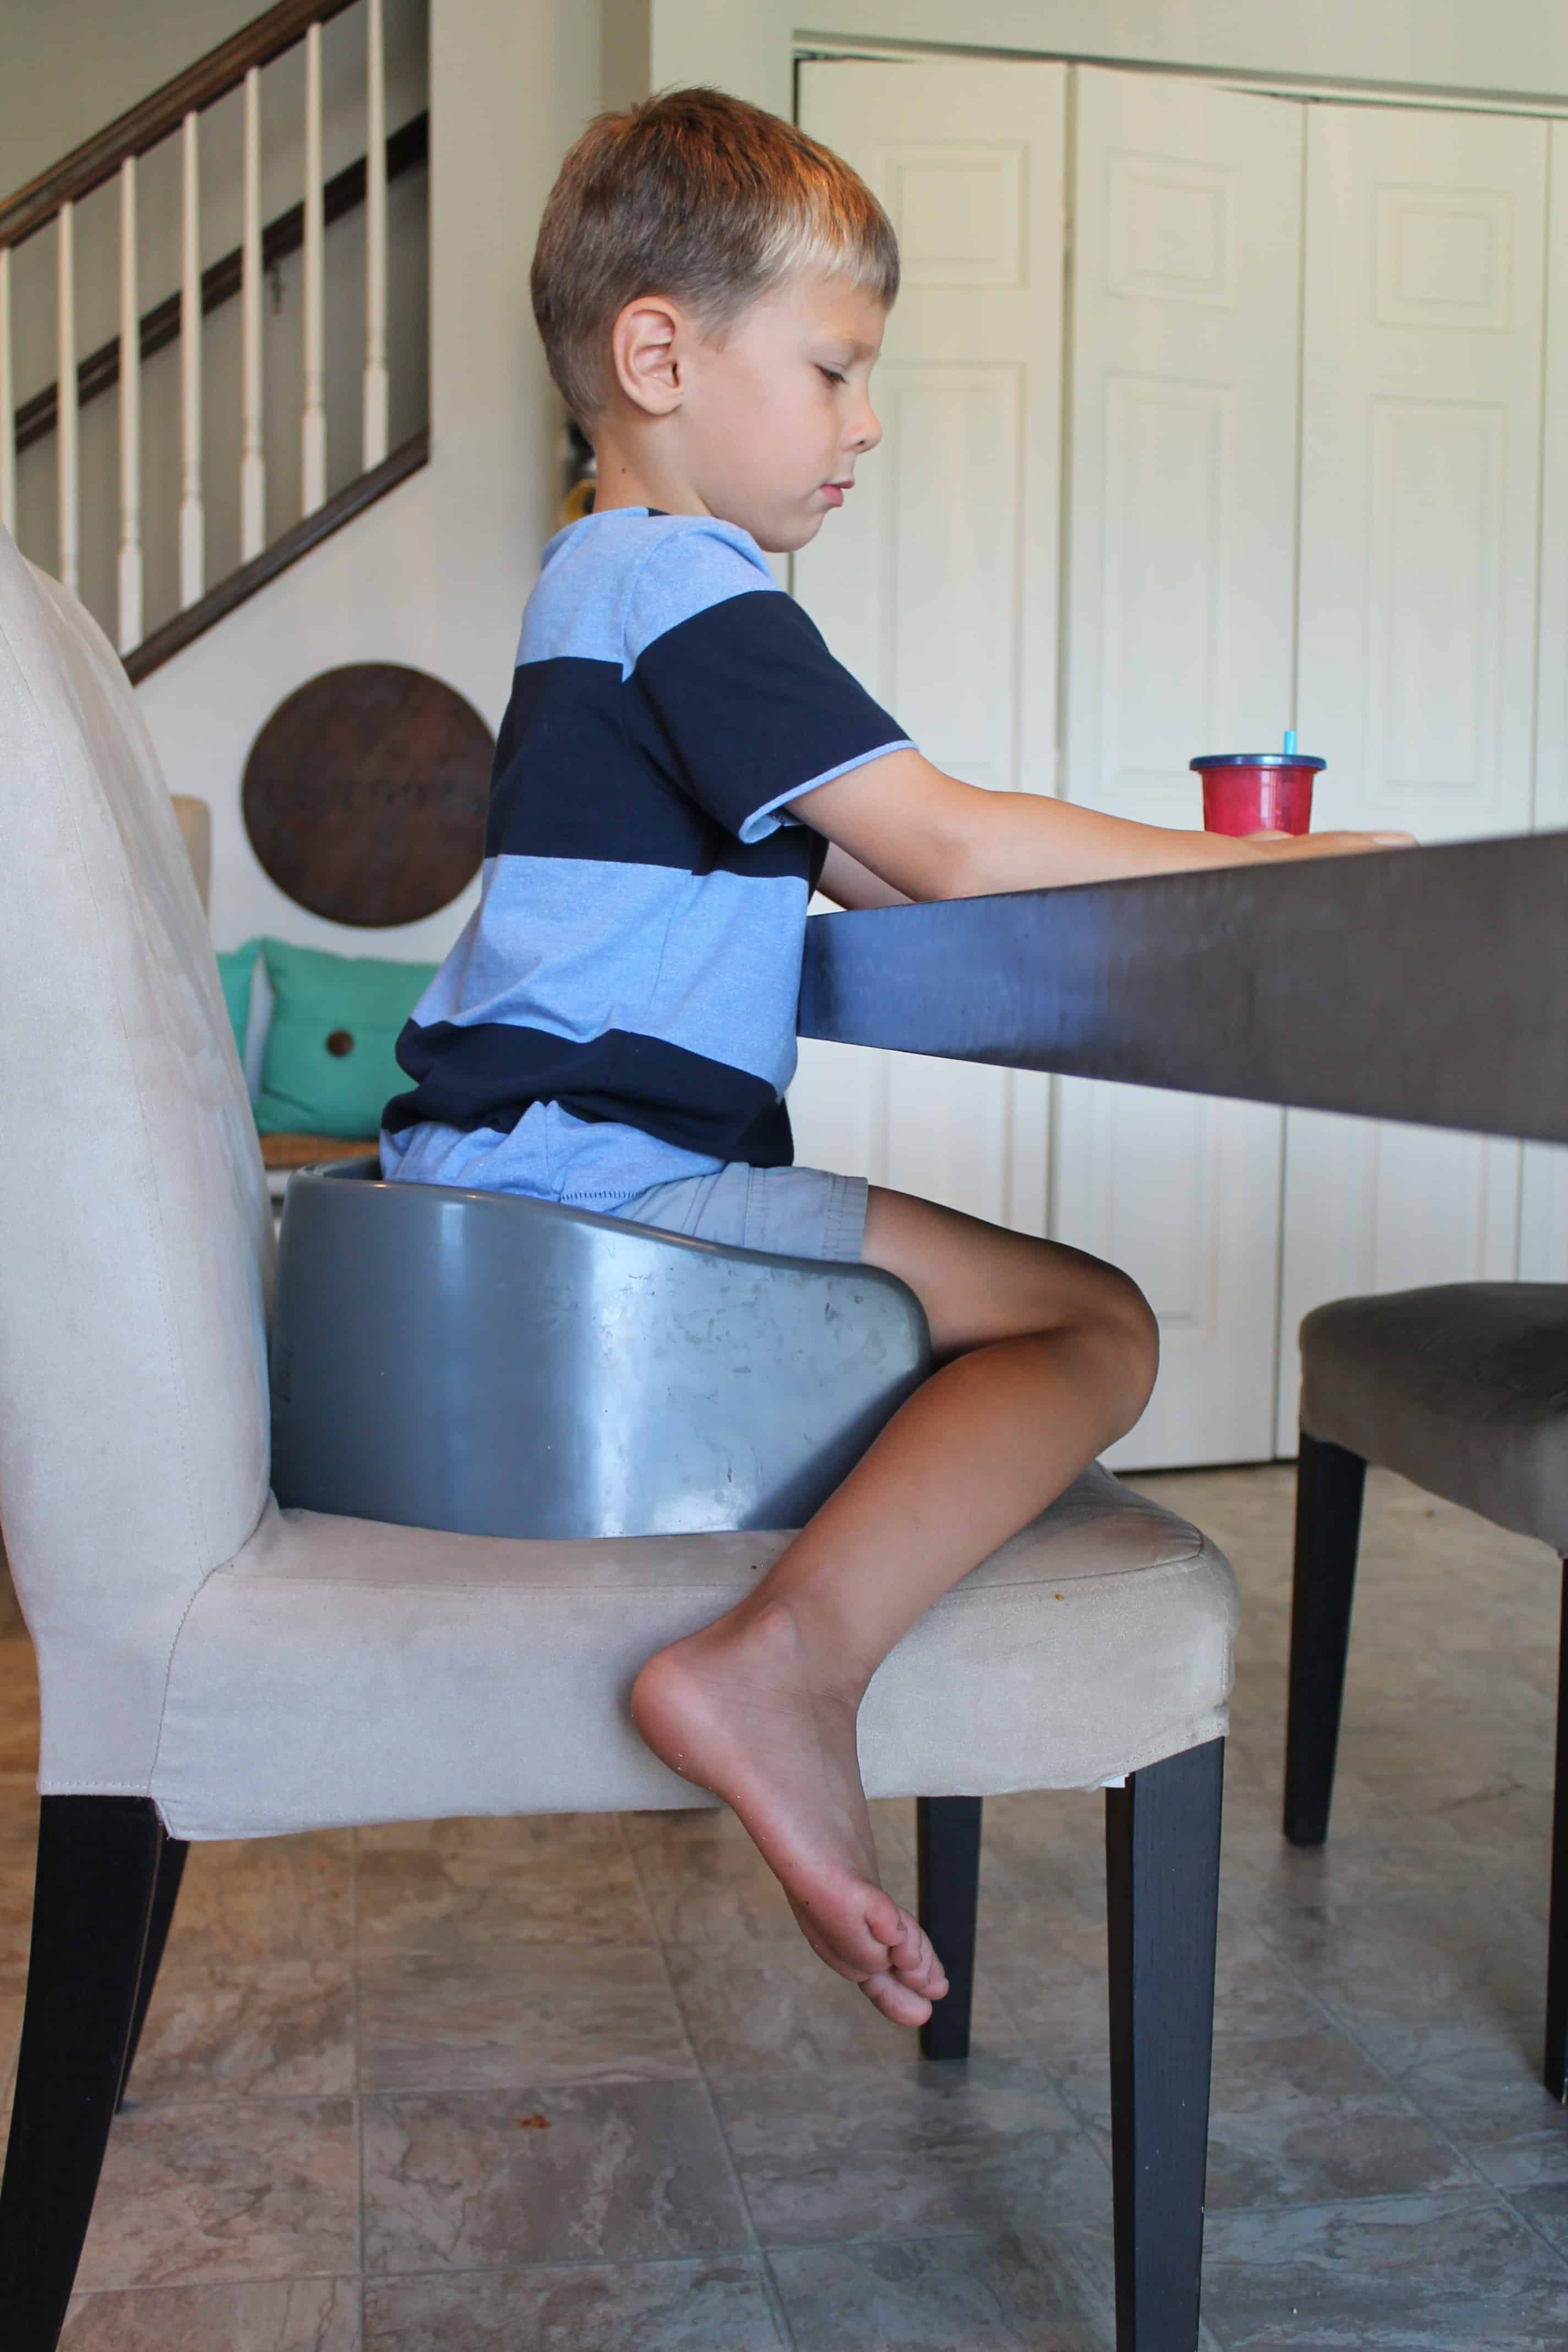 Best Seated Position For Kids During Mealtime